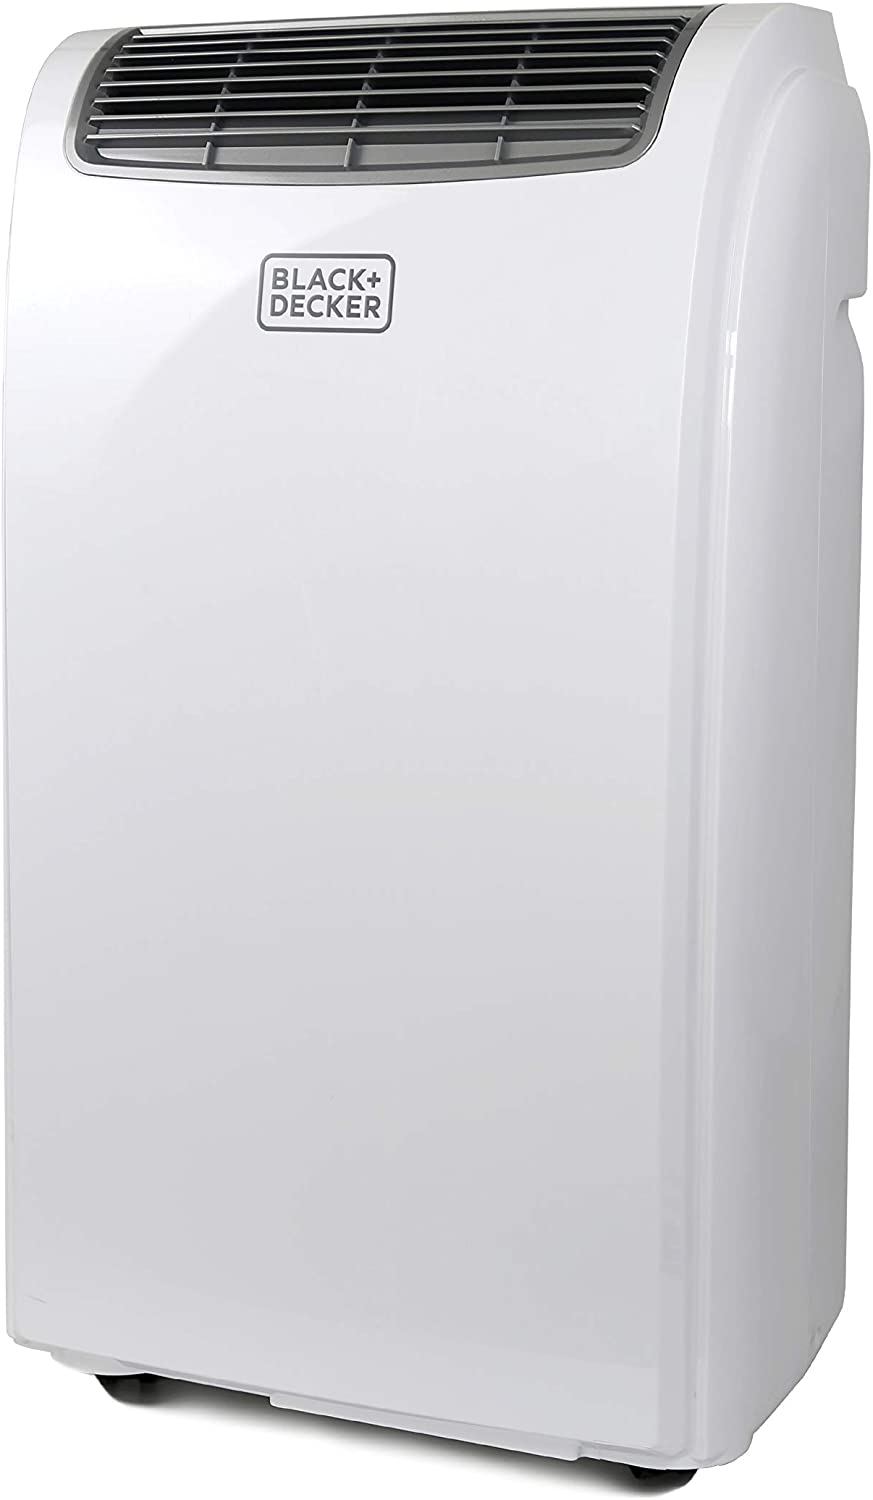 Black + Decker BPACT08WT 8000 BTU Portable Bedroom Air Conditioner